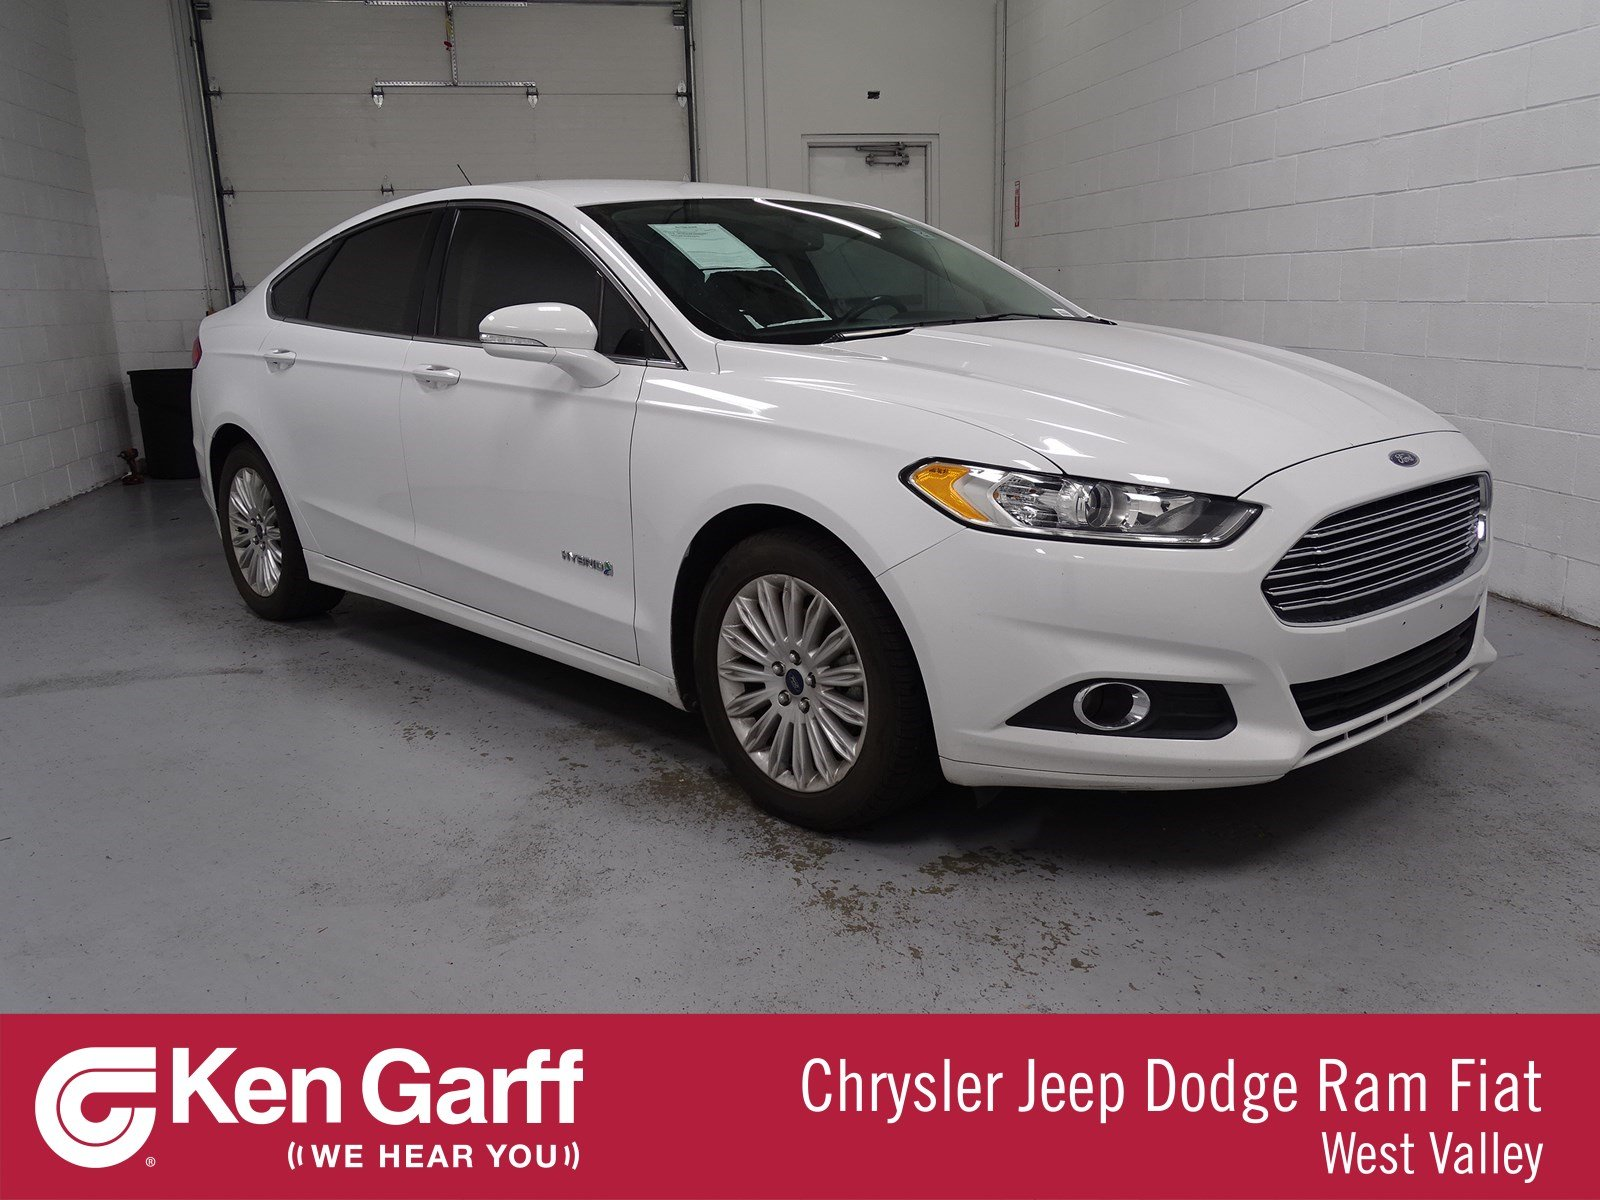 Pre Owned 2014 Ford Fusion SE Hybrid 4dr Car 1DW8219